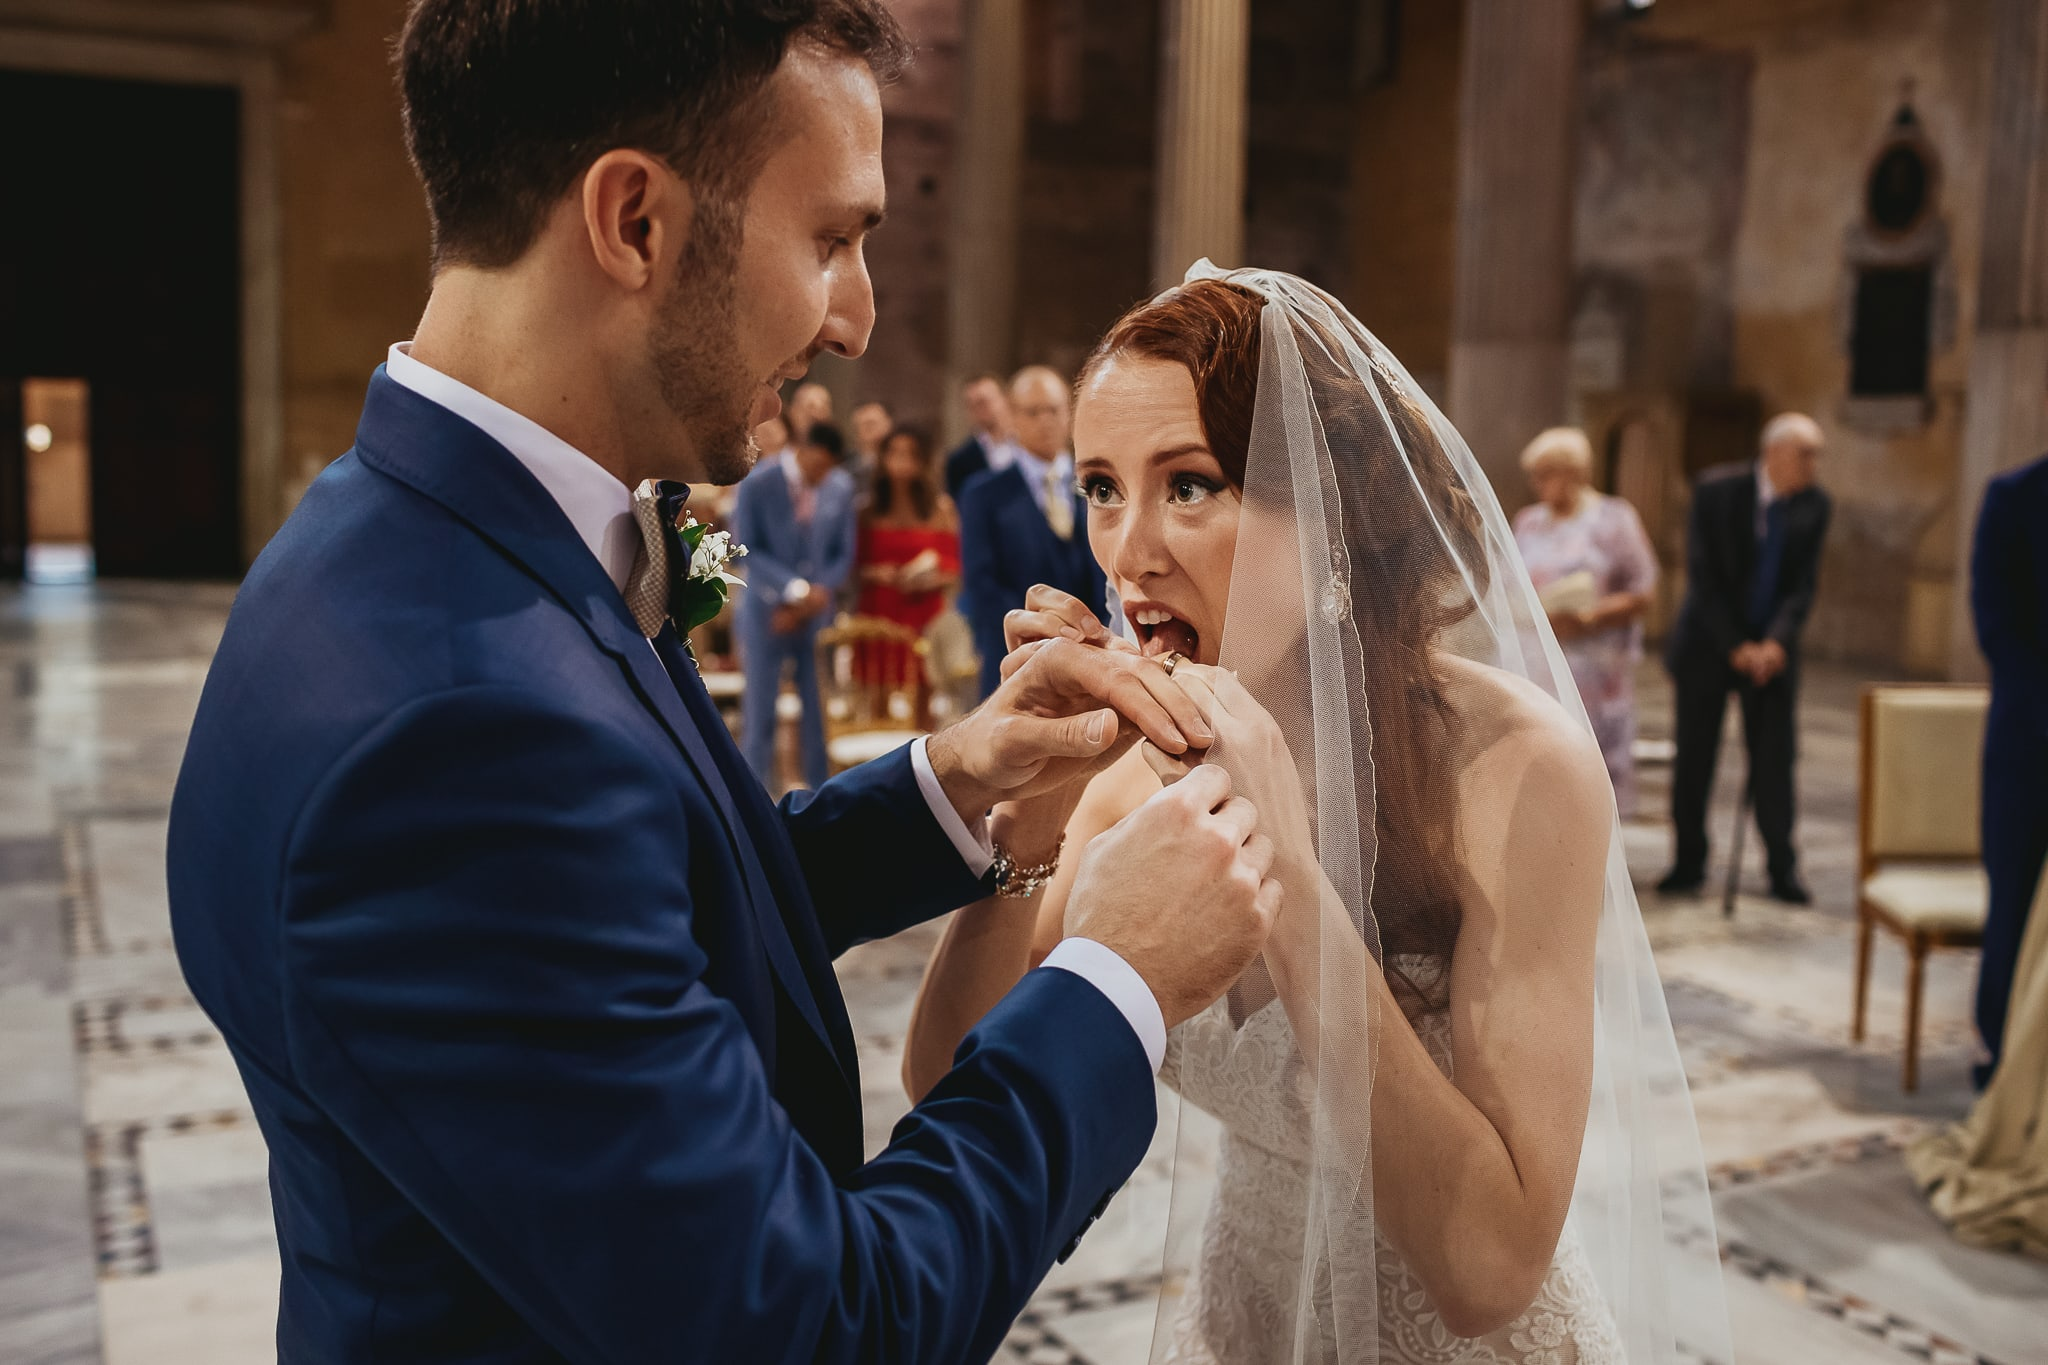 funny photo made by wedding photographers in rome of the bride licking the wedding ring before the exchange of the rings